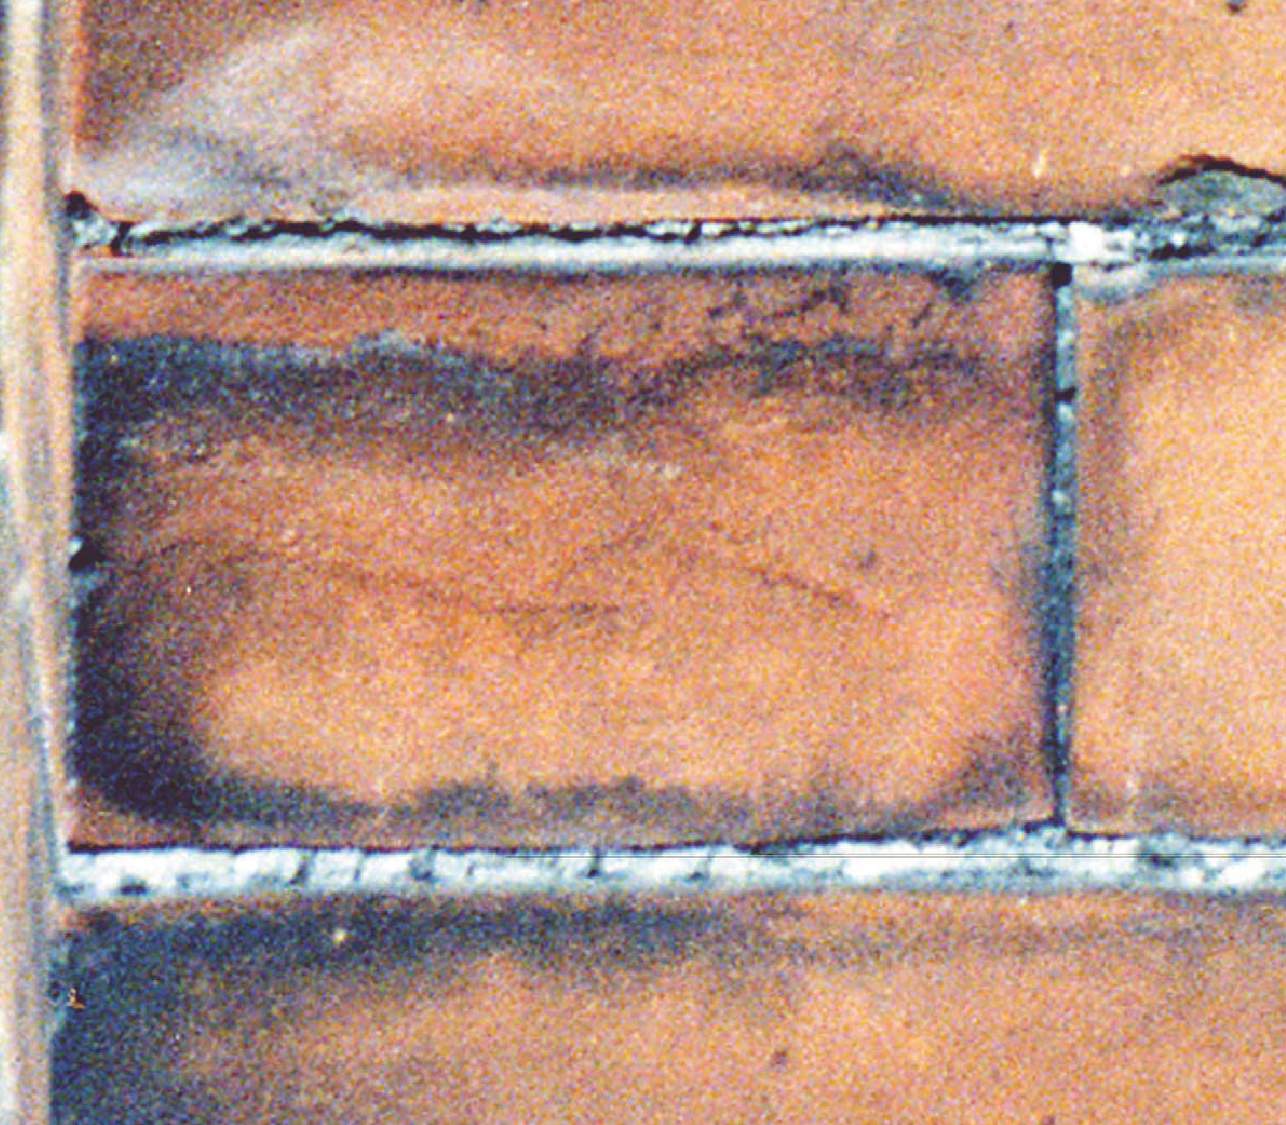 Typical soiling ring on brick face note white deposits in for Soil your pants